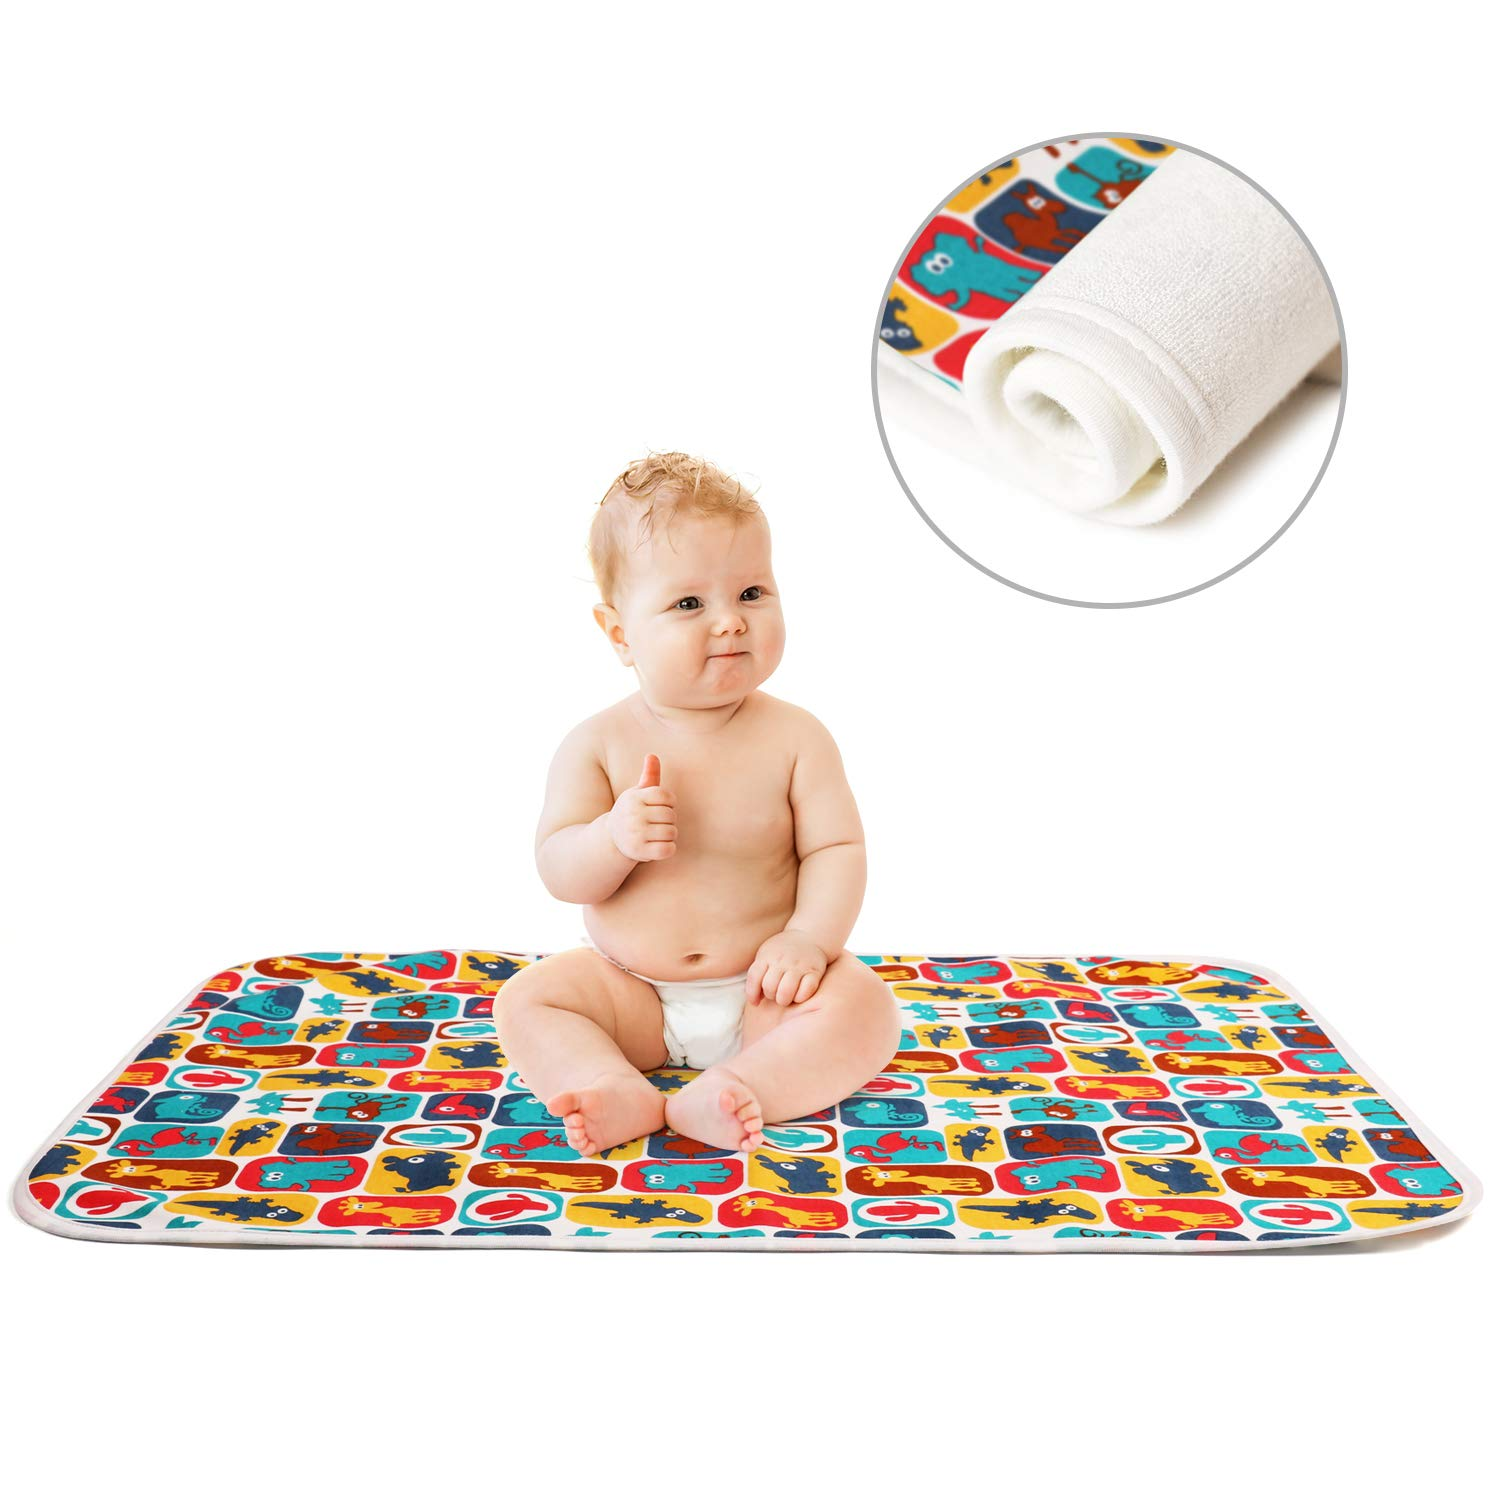 Printed Changing Baby Diaper Pad, Waterproof Pad Baby, Mifiatin Soft Urine Pads Absorbent Blanket Sheet Bed Pads Washable Mattress Change Mat Incontinence Pads for Infant and Adults - Zoo(50x70cm)